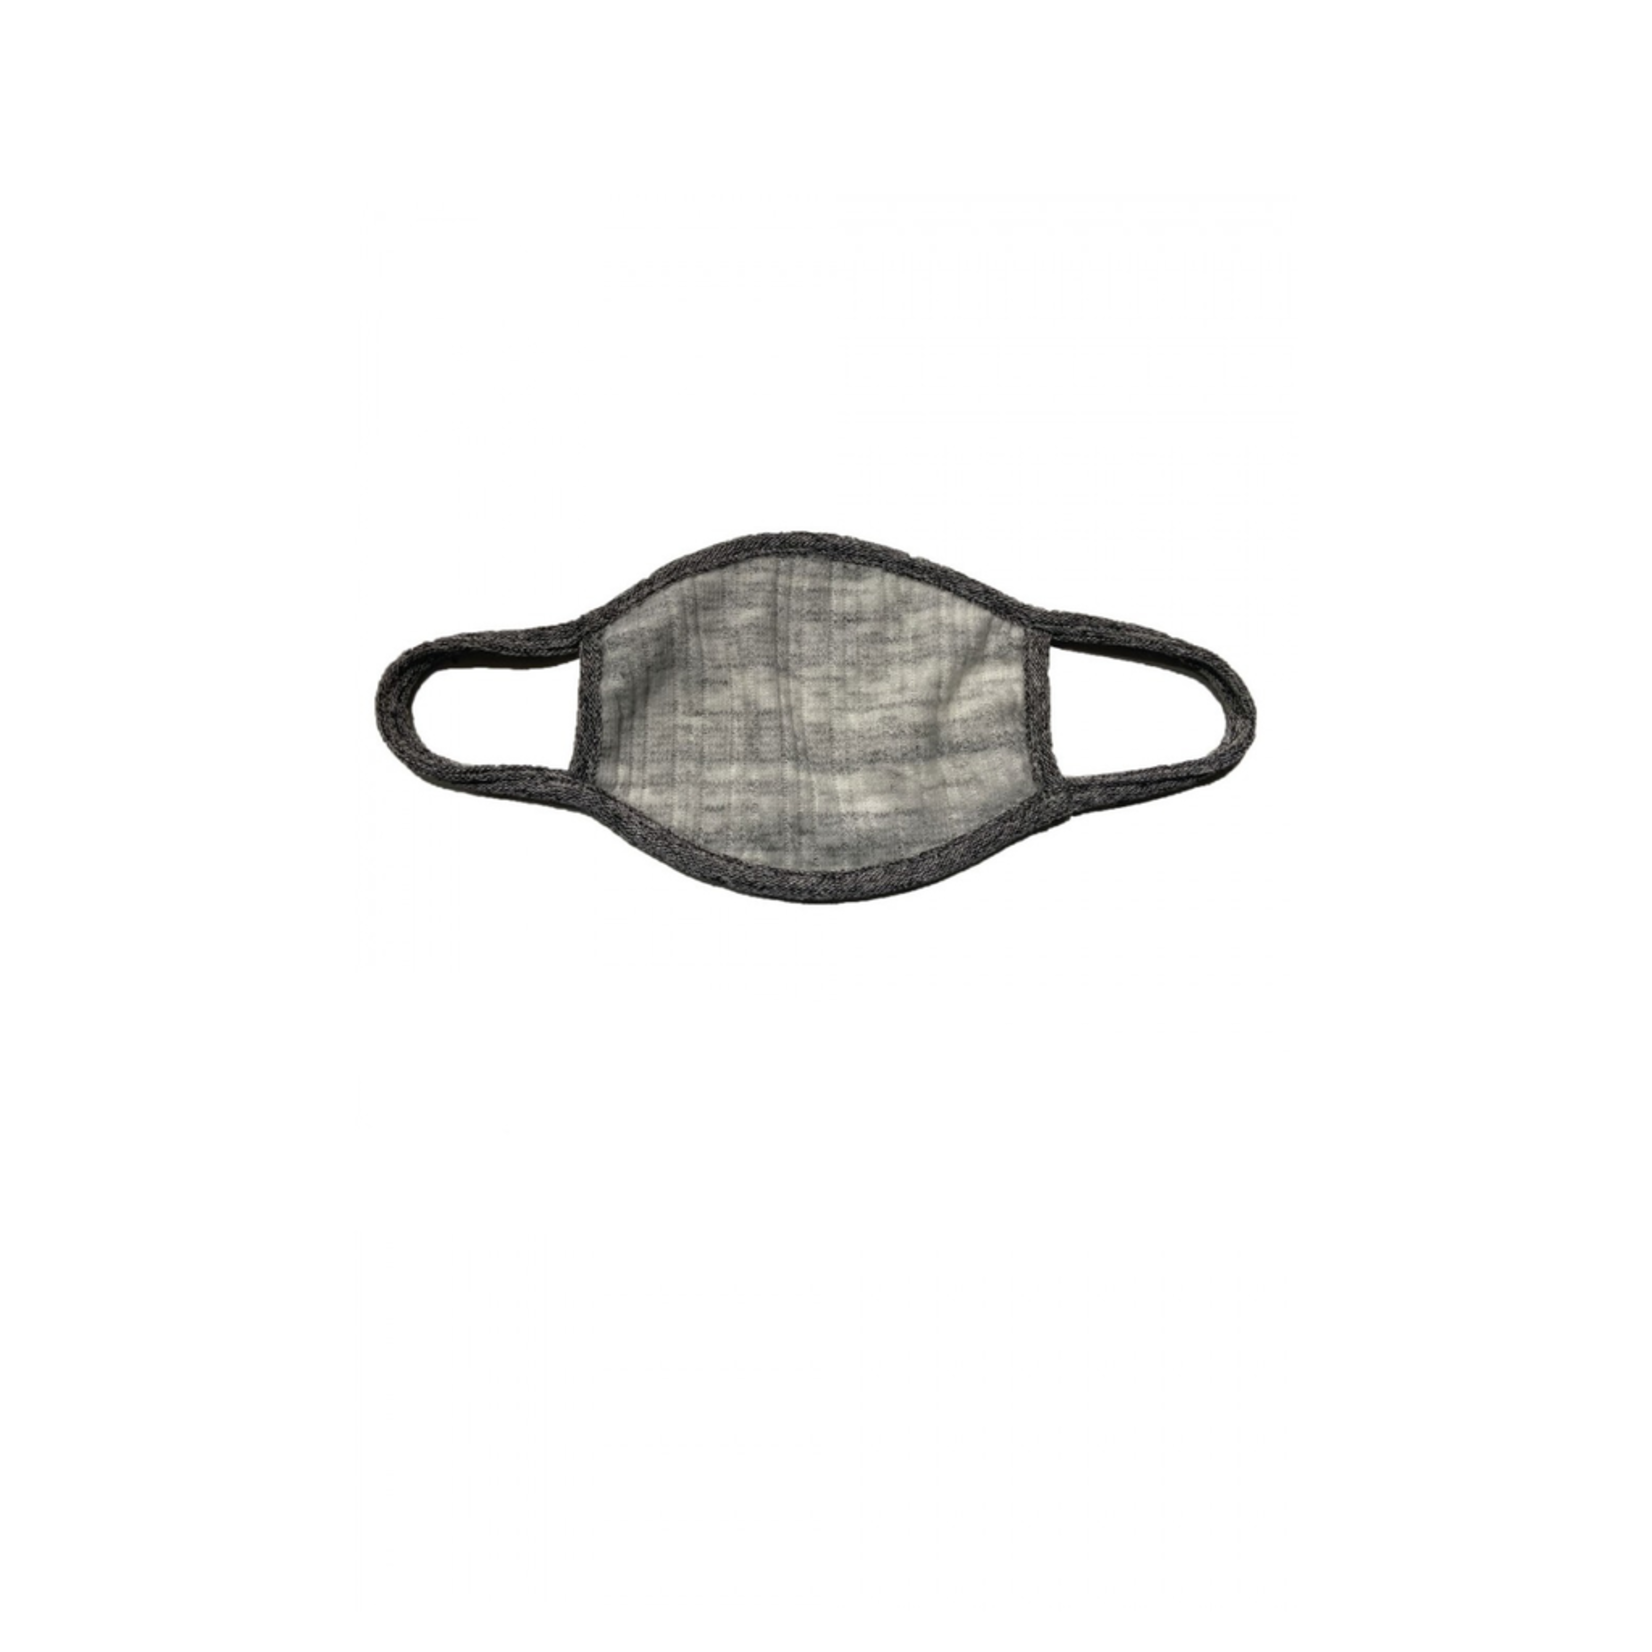 Coin 1804 Kids Cozy Brushed Mask